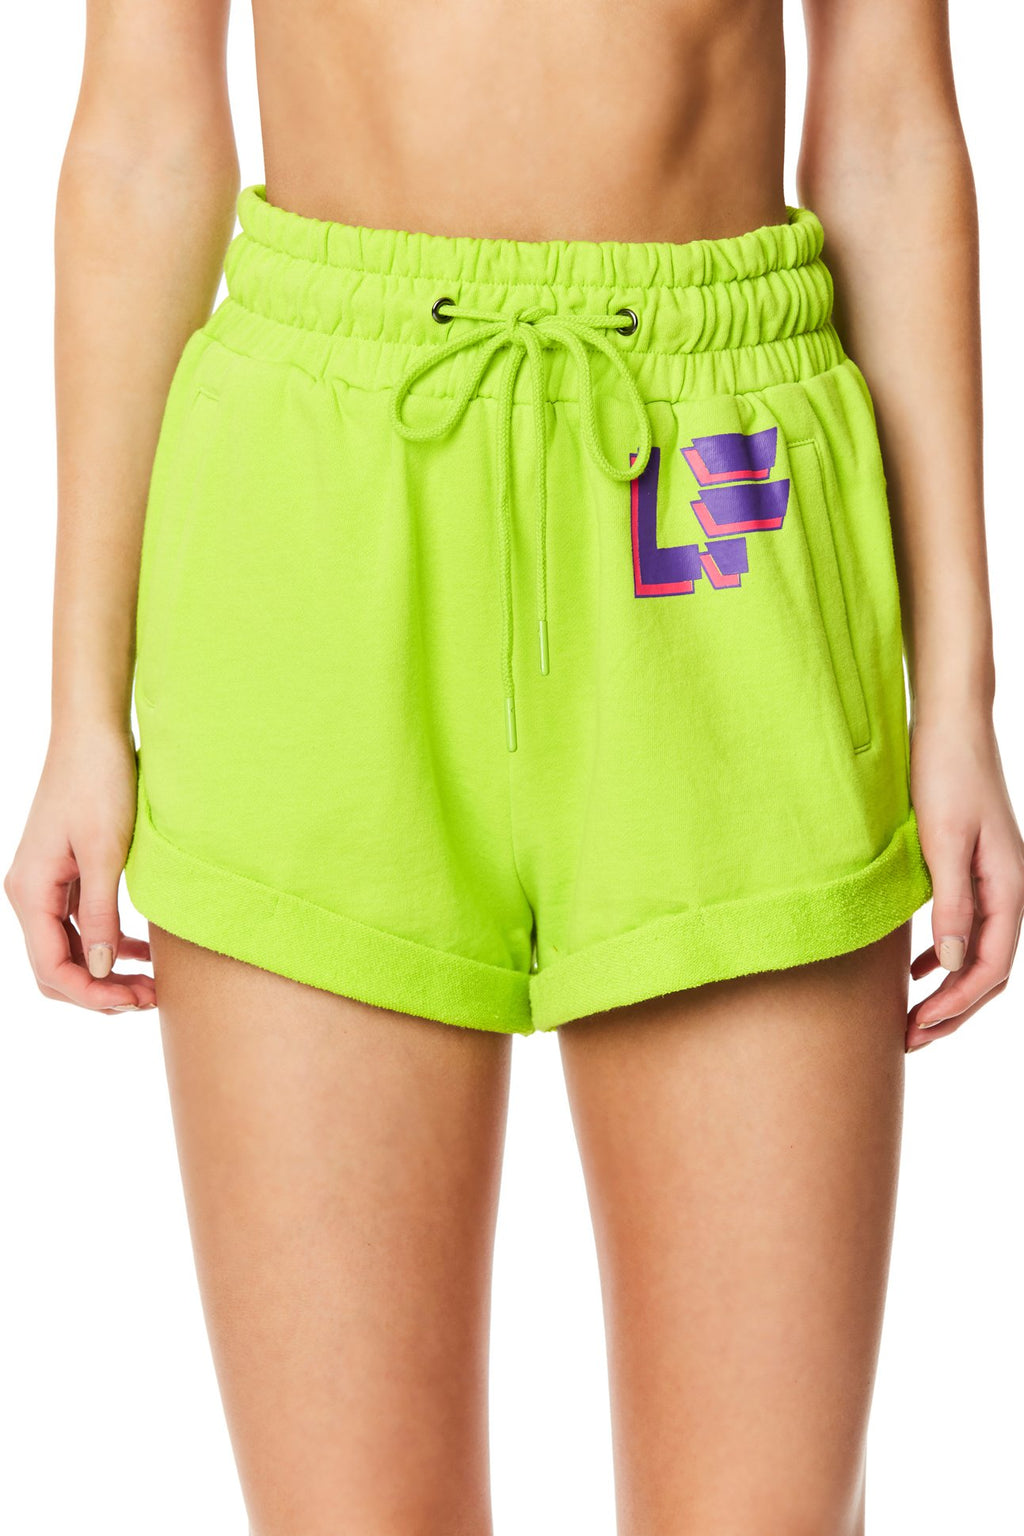 LF THE BRAND HIGH-RISE SWEAT SHORT CROP FRONT